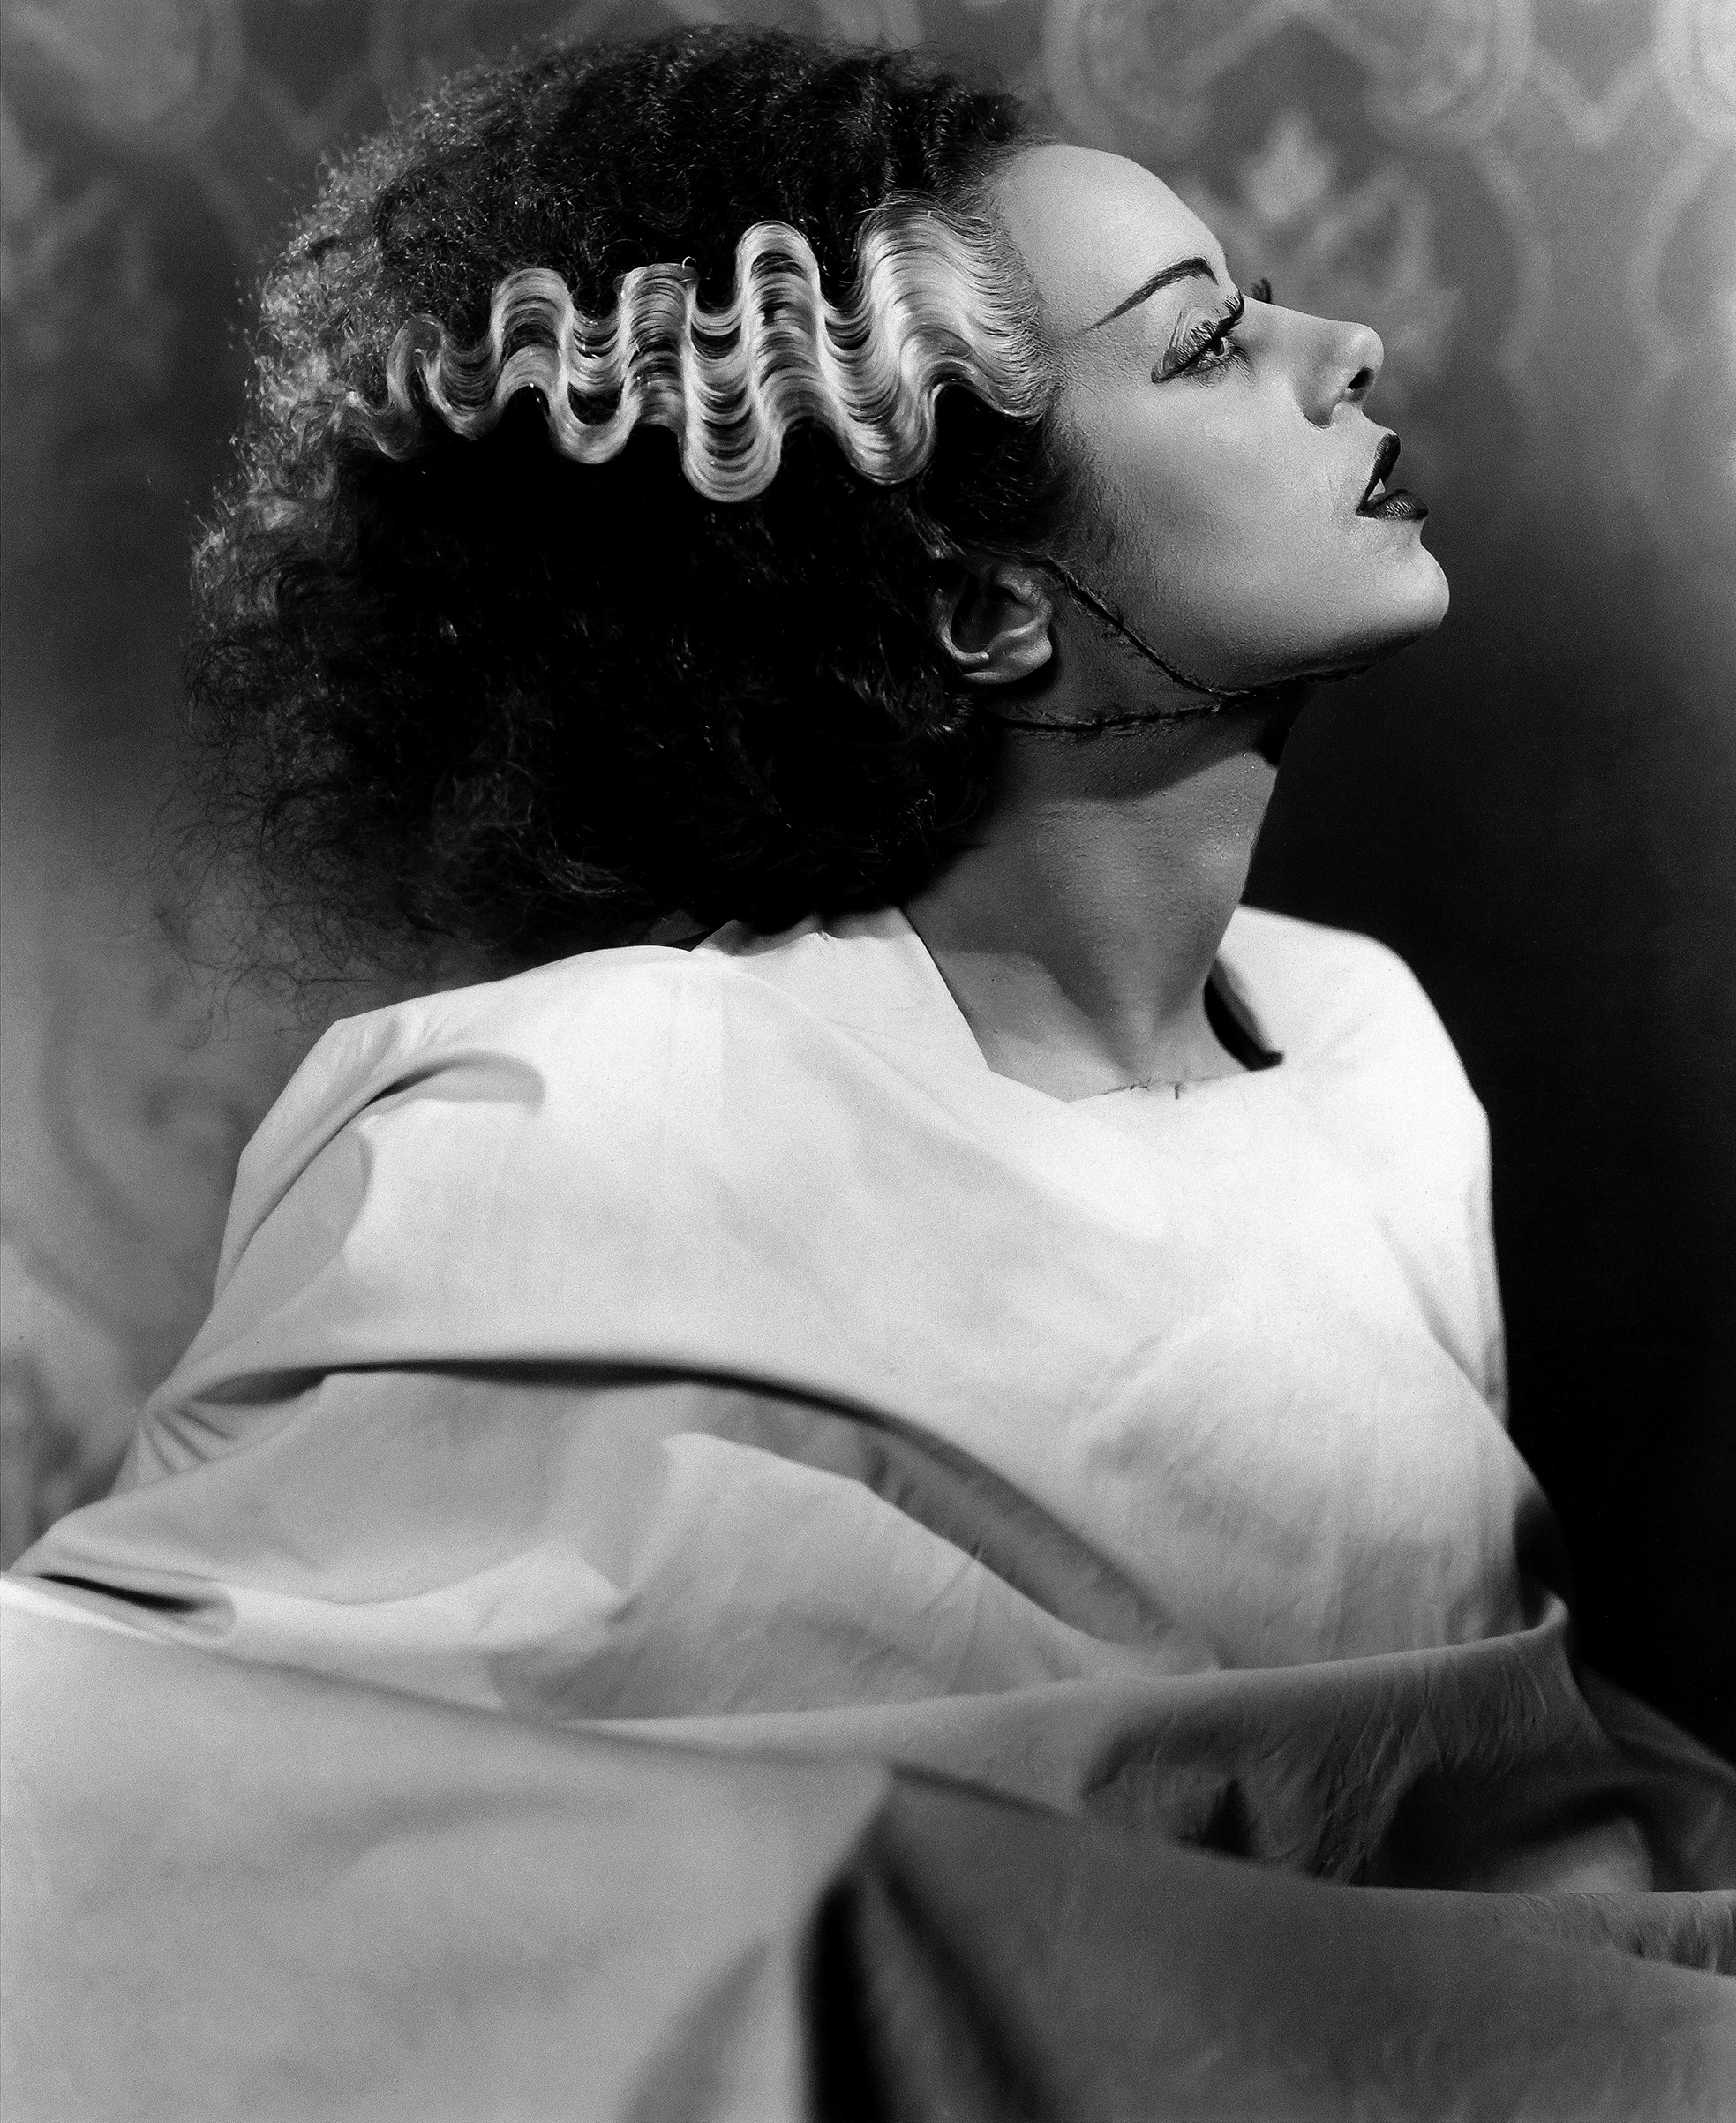 Jack Pierce's makeup for Elsa Lanchester as the Bride, based on visual ideas supplied by James Whale and Ernest Thesiger. 1935.